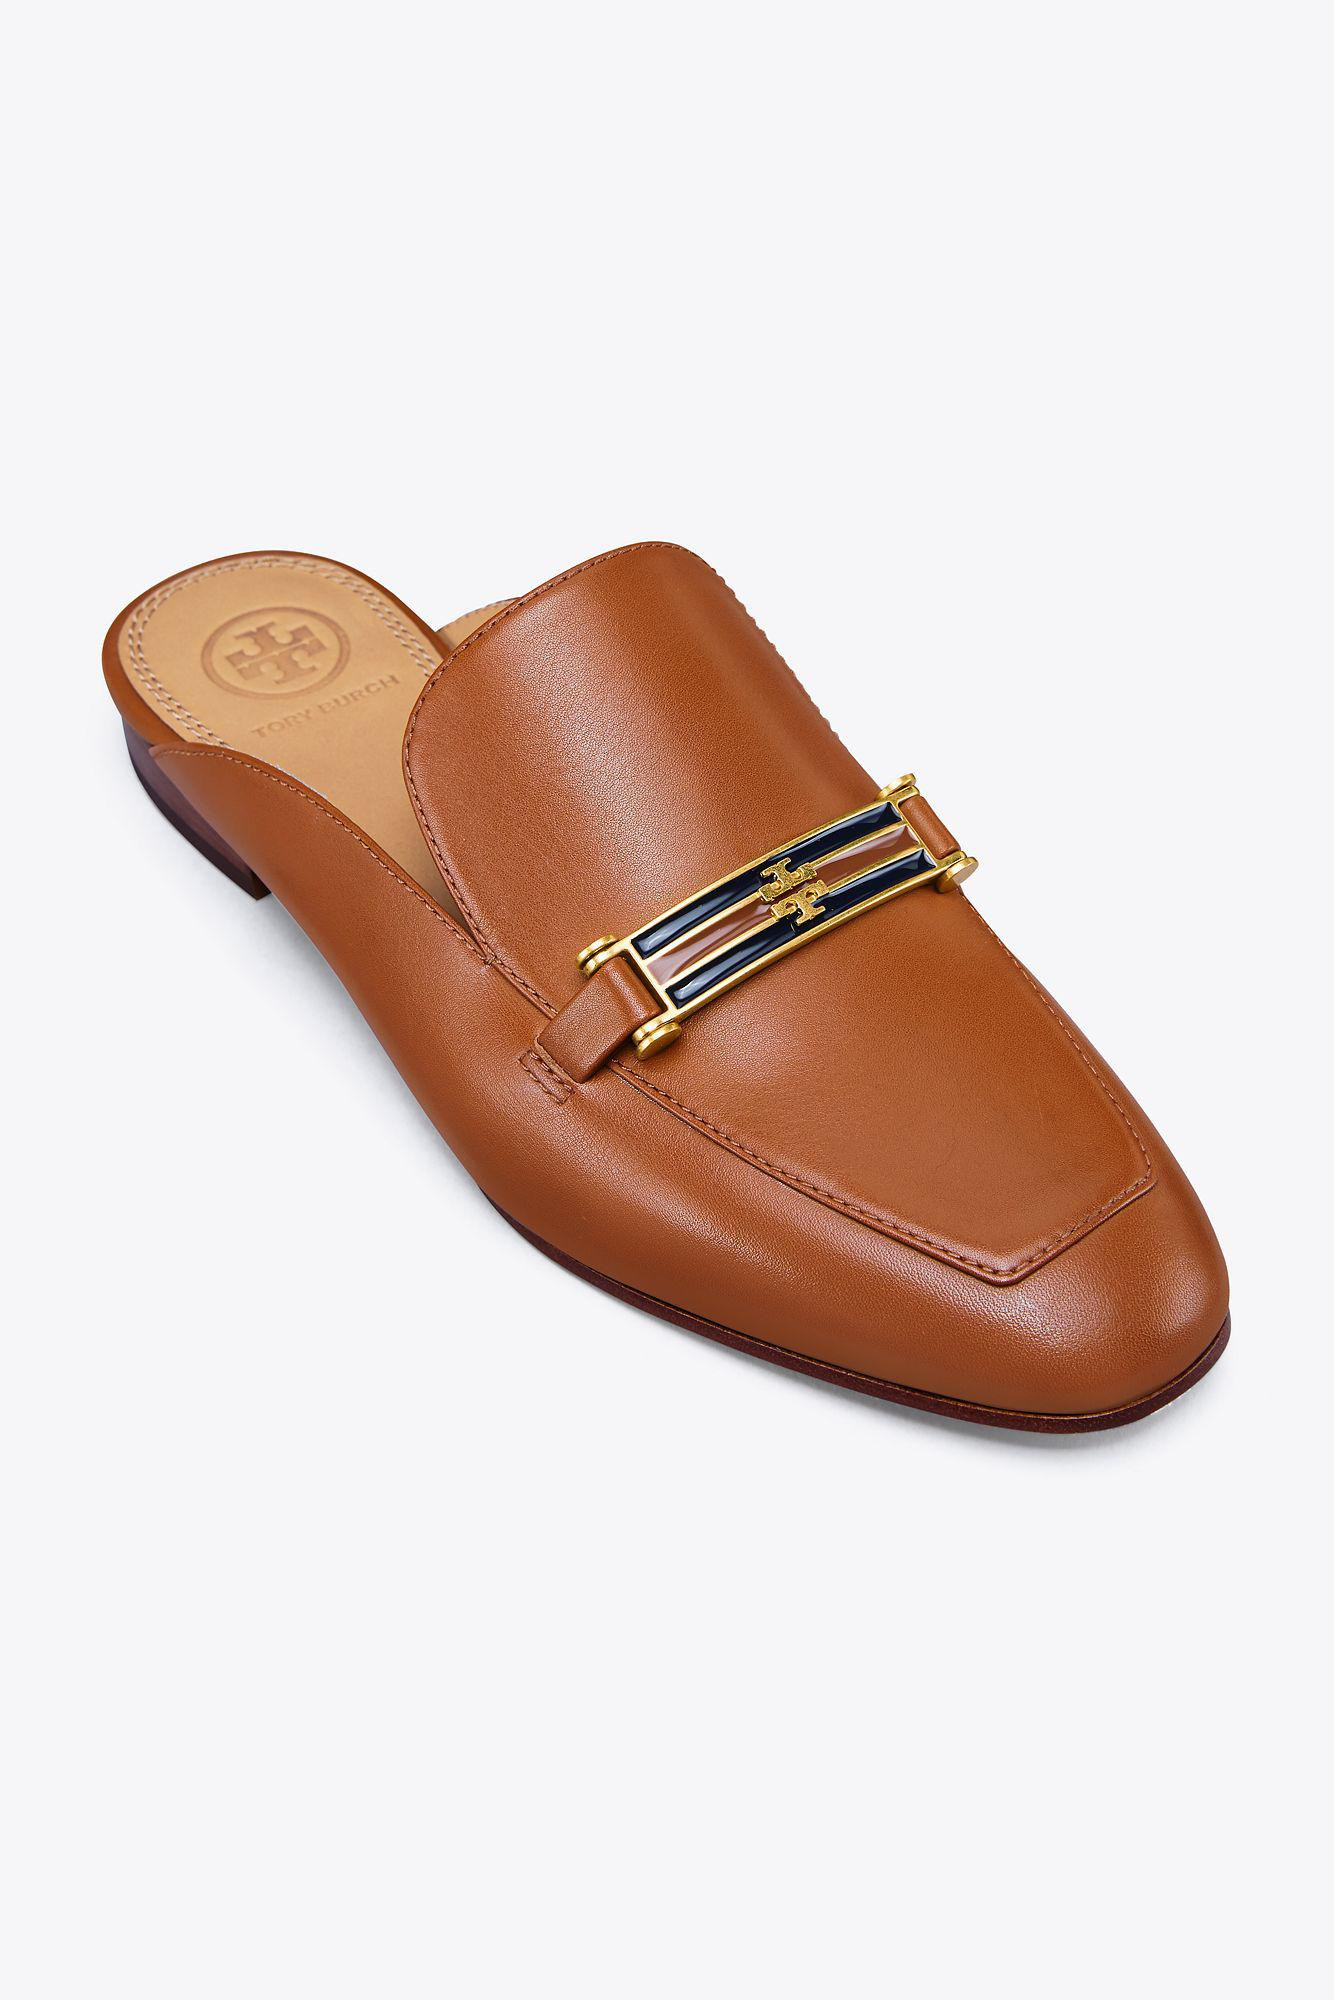 Tory Burch Amelia Backless Loafer yd3Y3igN5